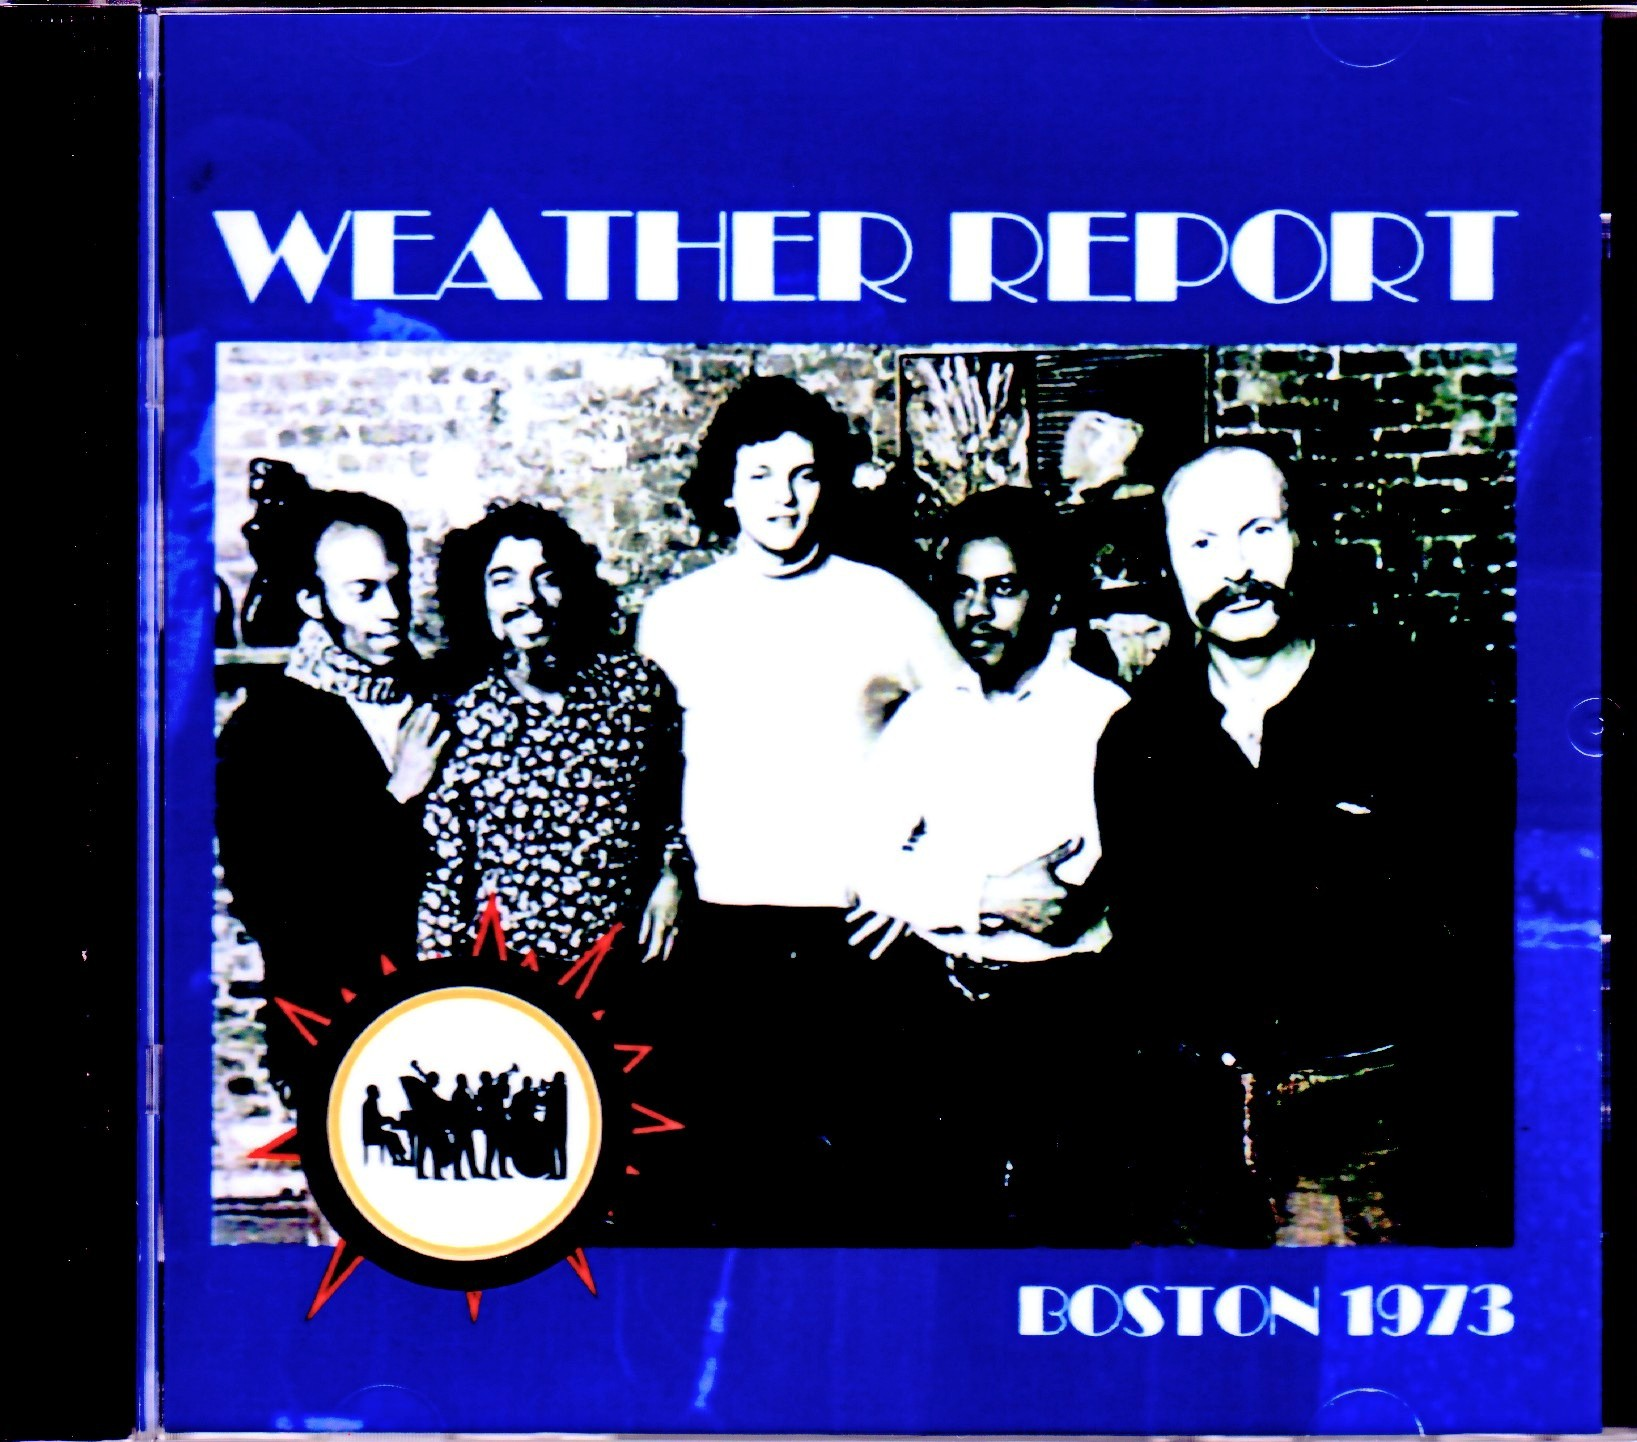 Weather Report ウェザー・リポート/MA,USA 1973